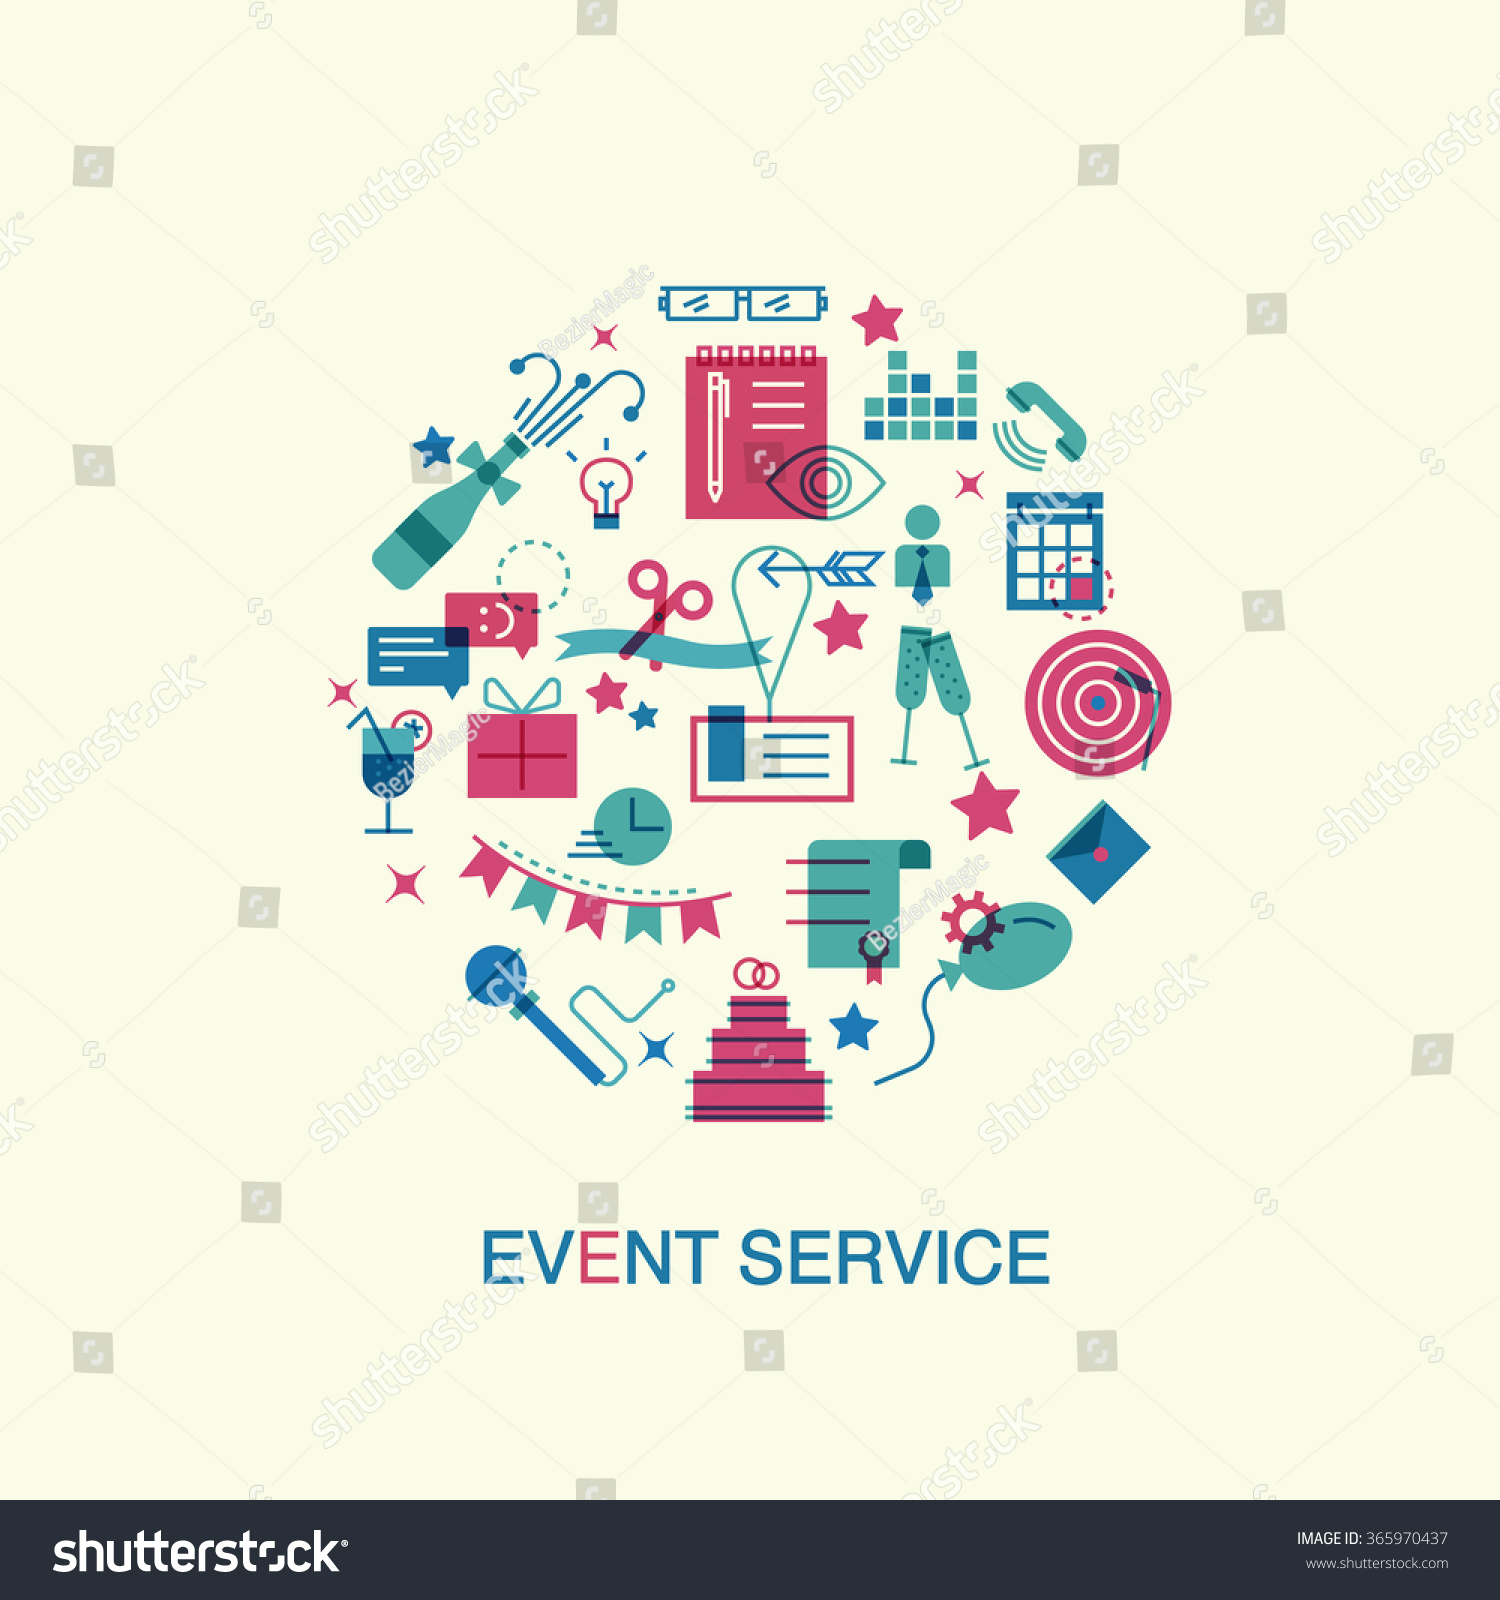 marketing and catering services Barwaaqo marketing and catering services (bmcs) is a crop collection, storage, and marketing service serving farmers in six villages throughout the gabiley district.